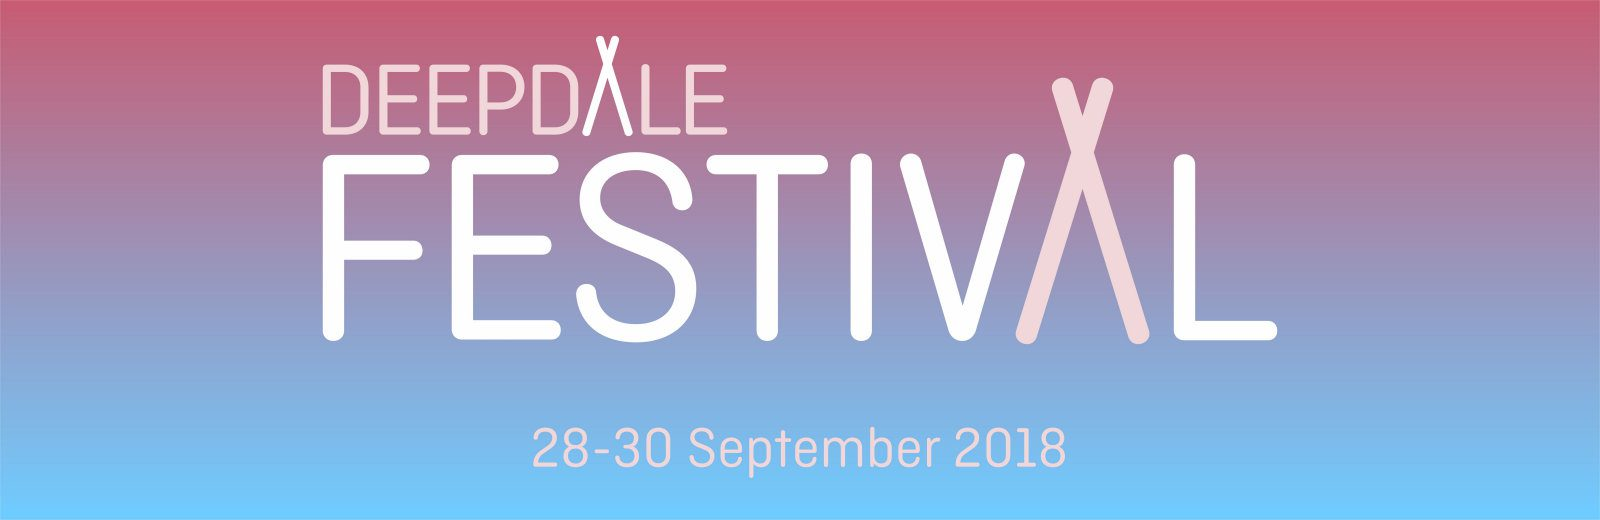 Deepdale Festival | 28th to 30th September 2018